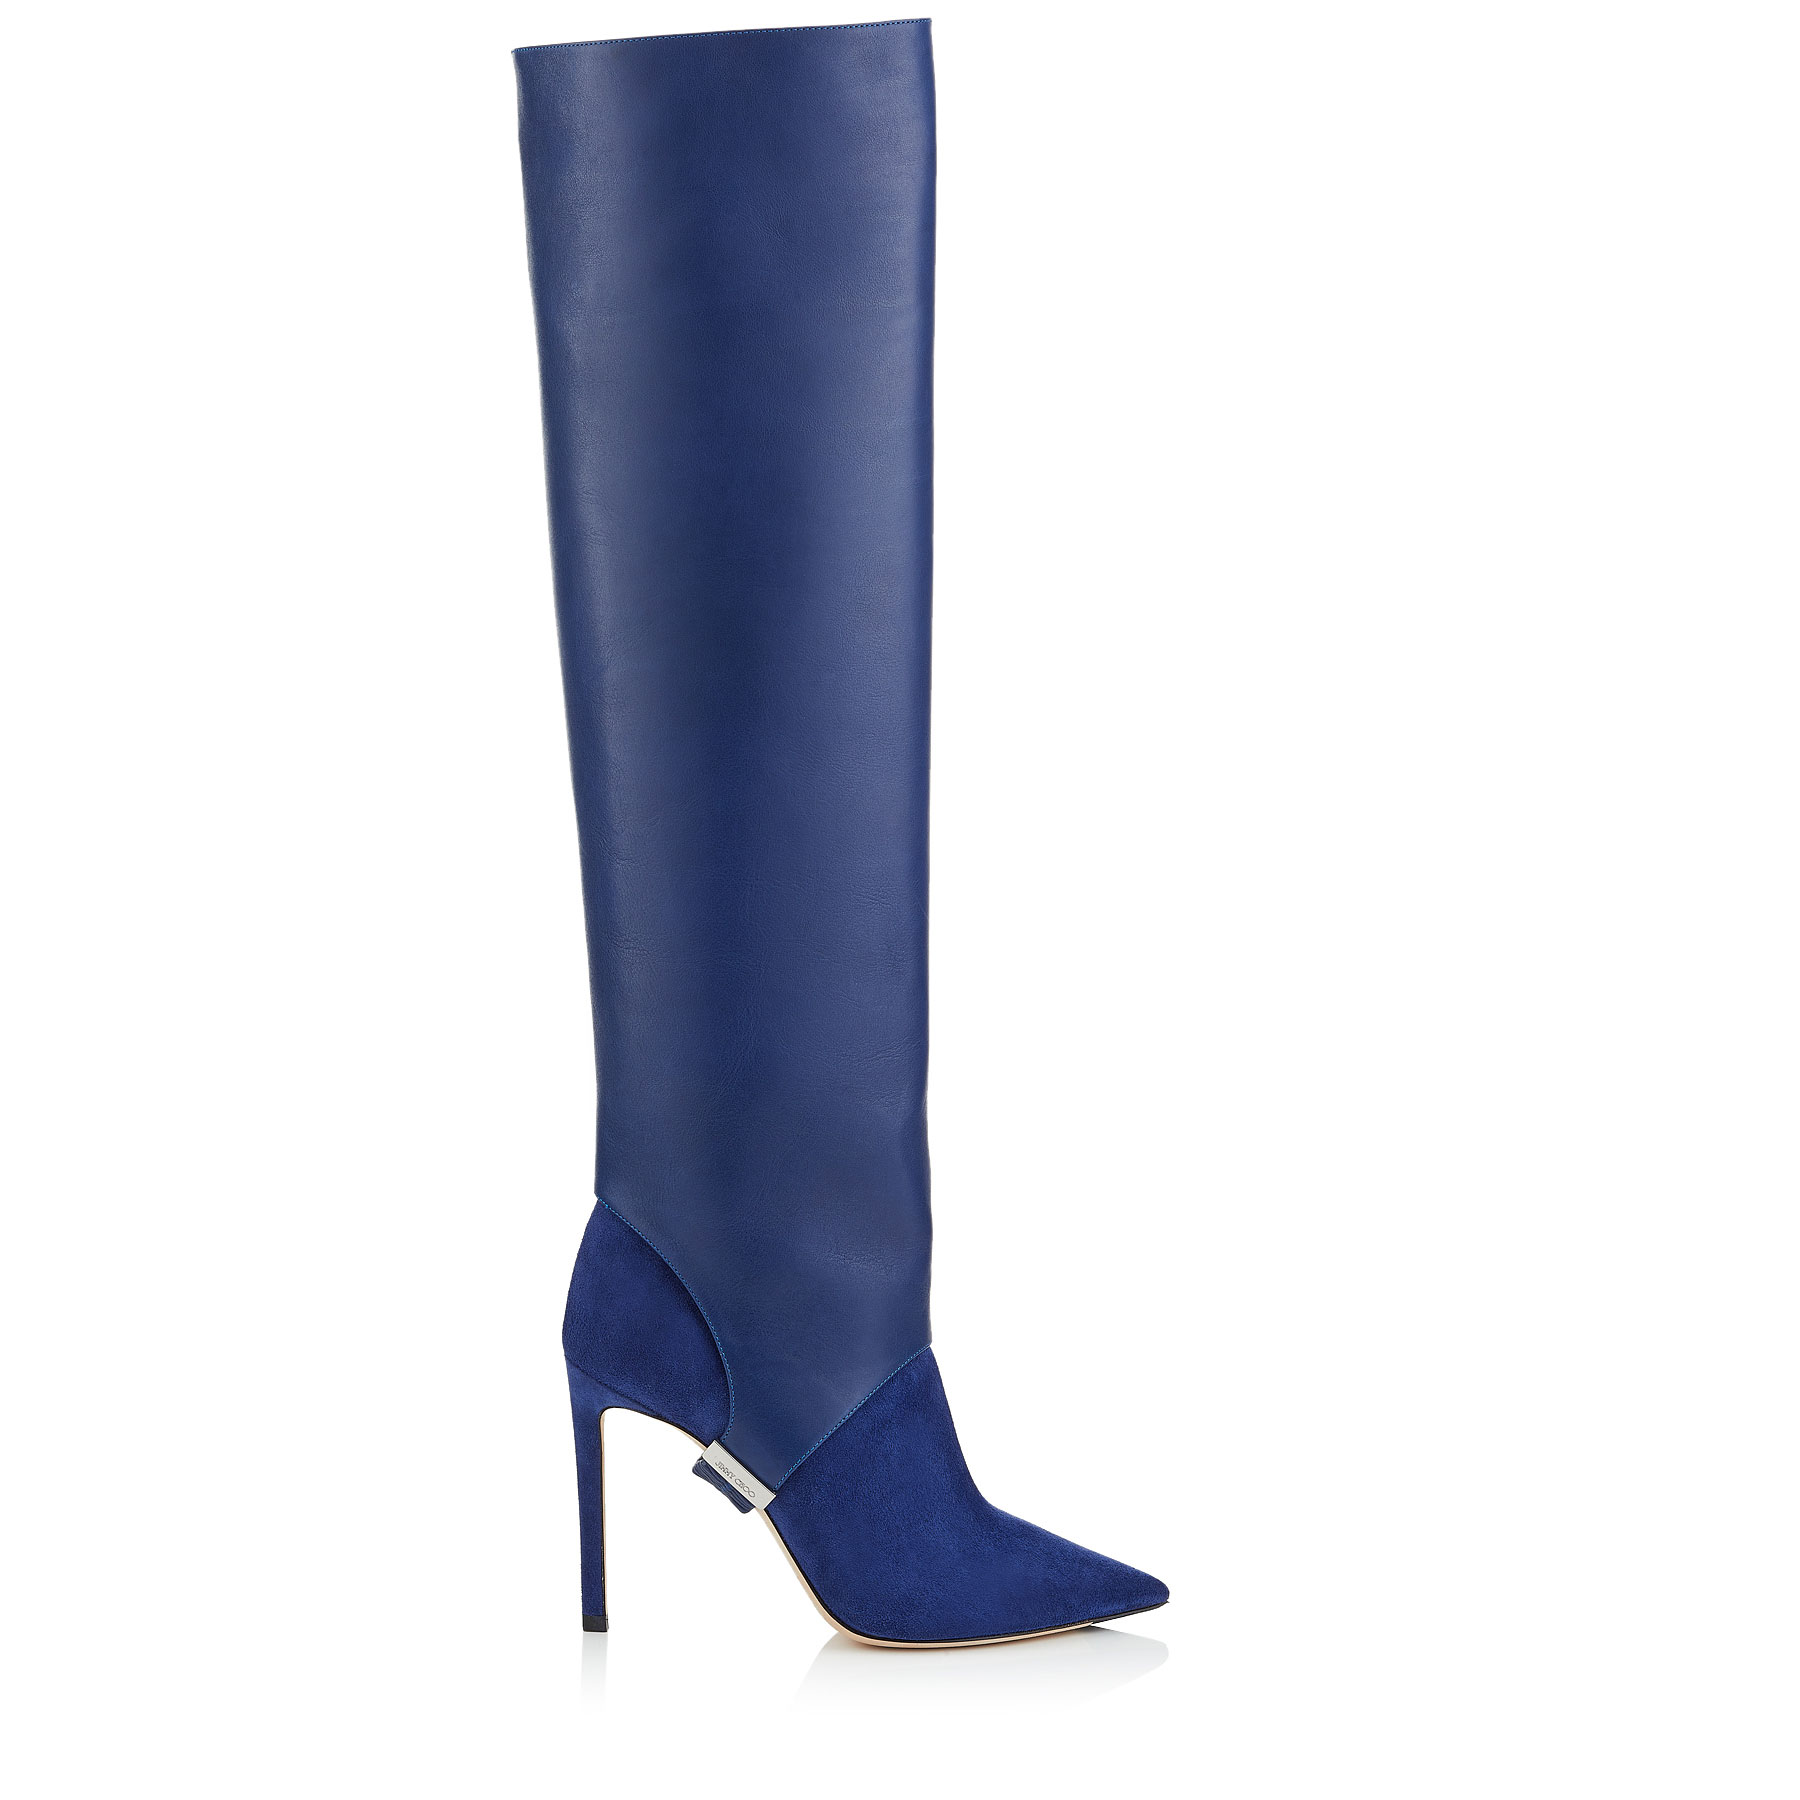 HURLEY 100 Pop Blue Suede and Calf Leather Two-Piece Knee-High Booties by Jimmy Choo